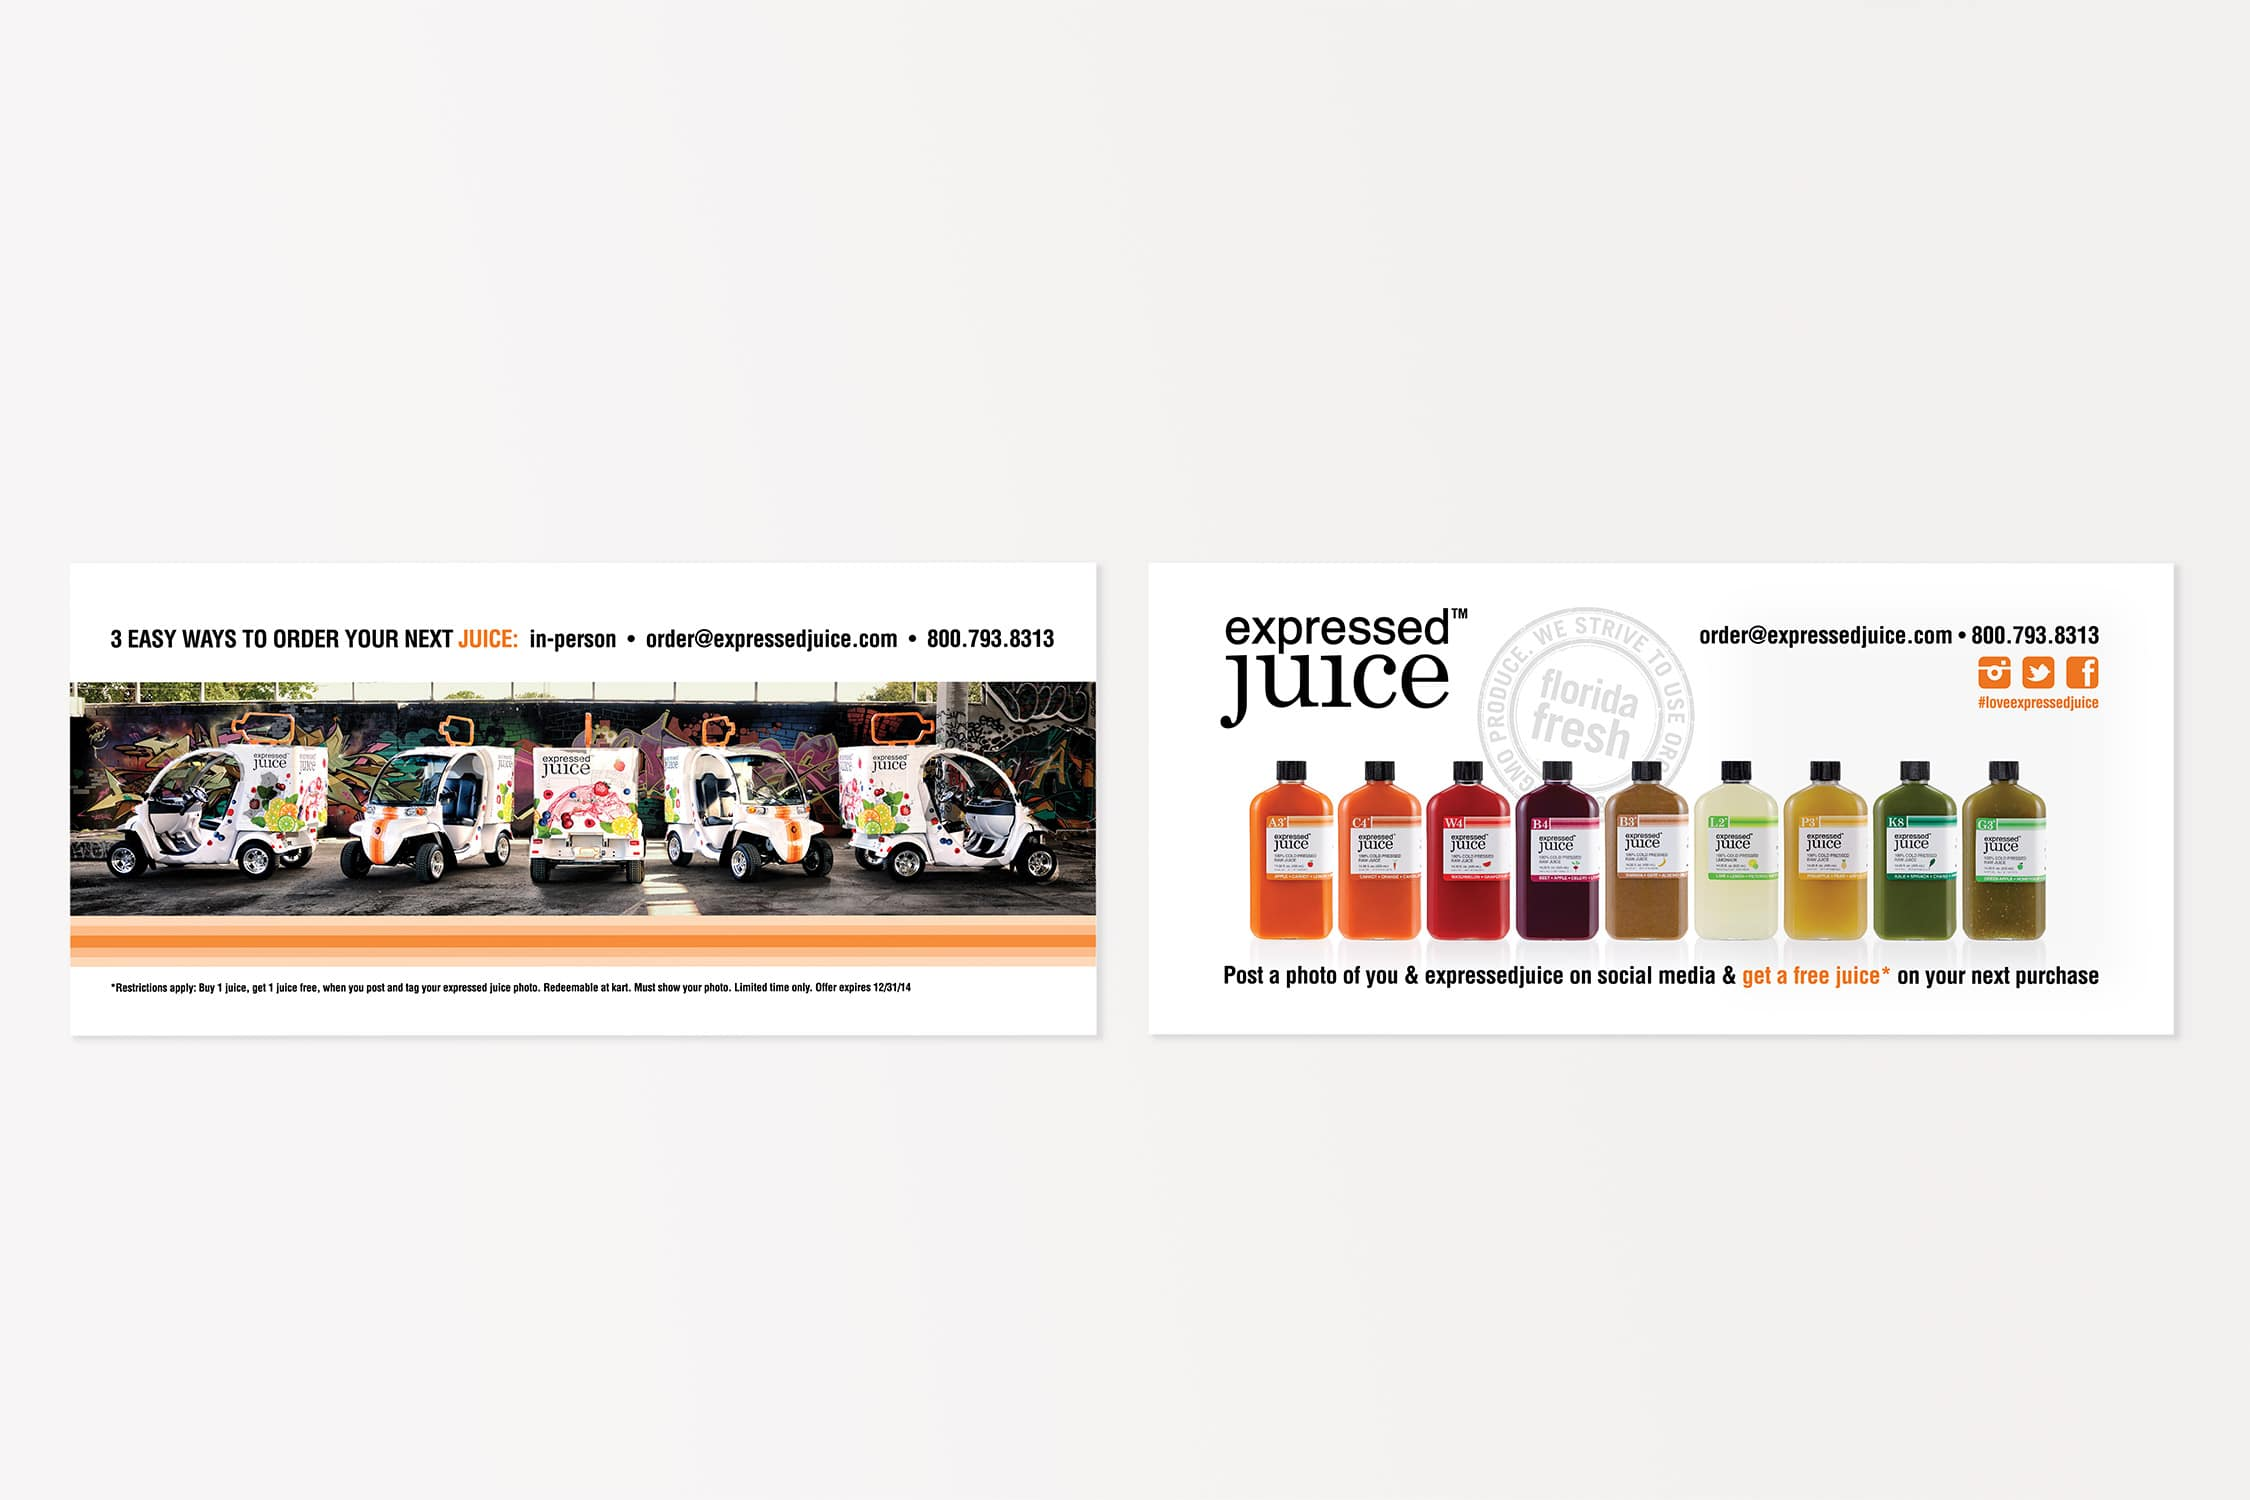 Expressed Juice postcard showcasing their products and spreading brand awareness.